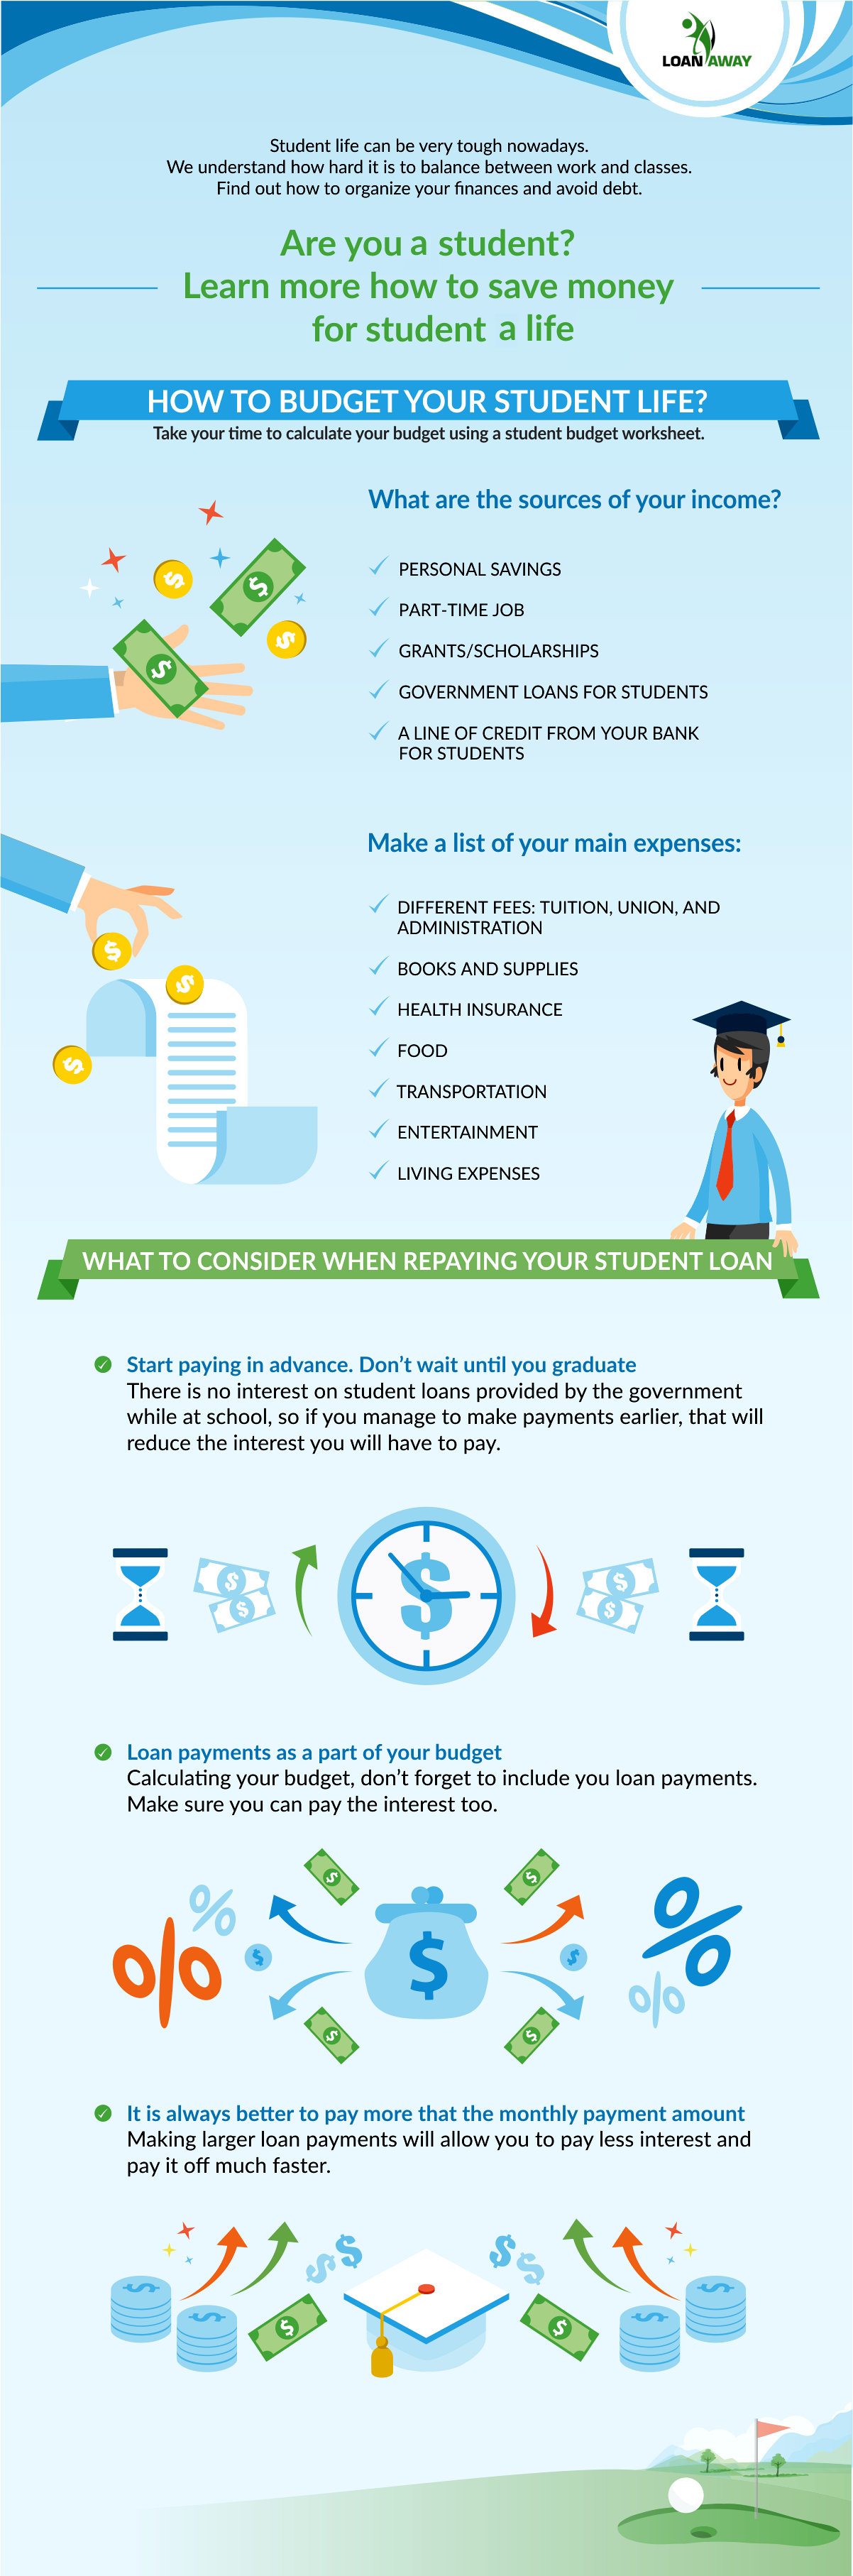 Are you a student? Learn more how to save money for a student life